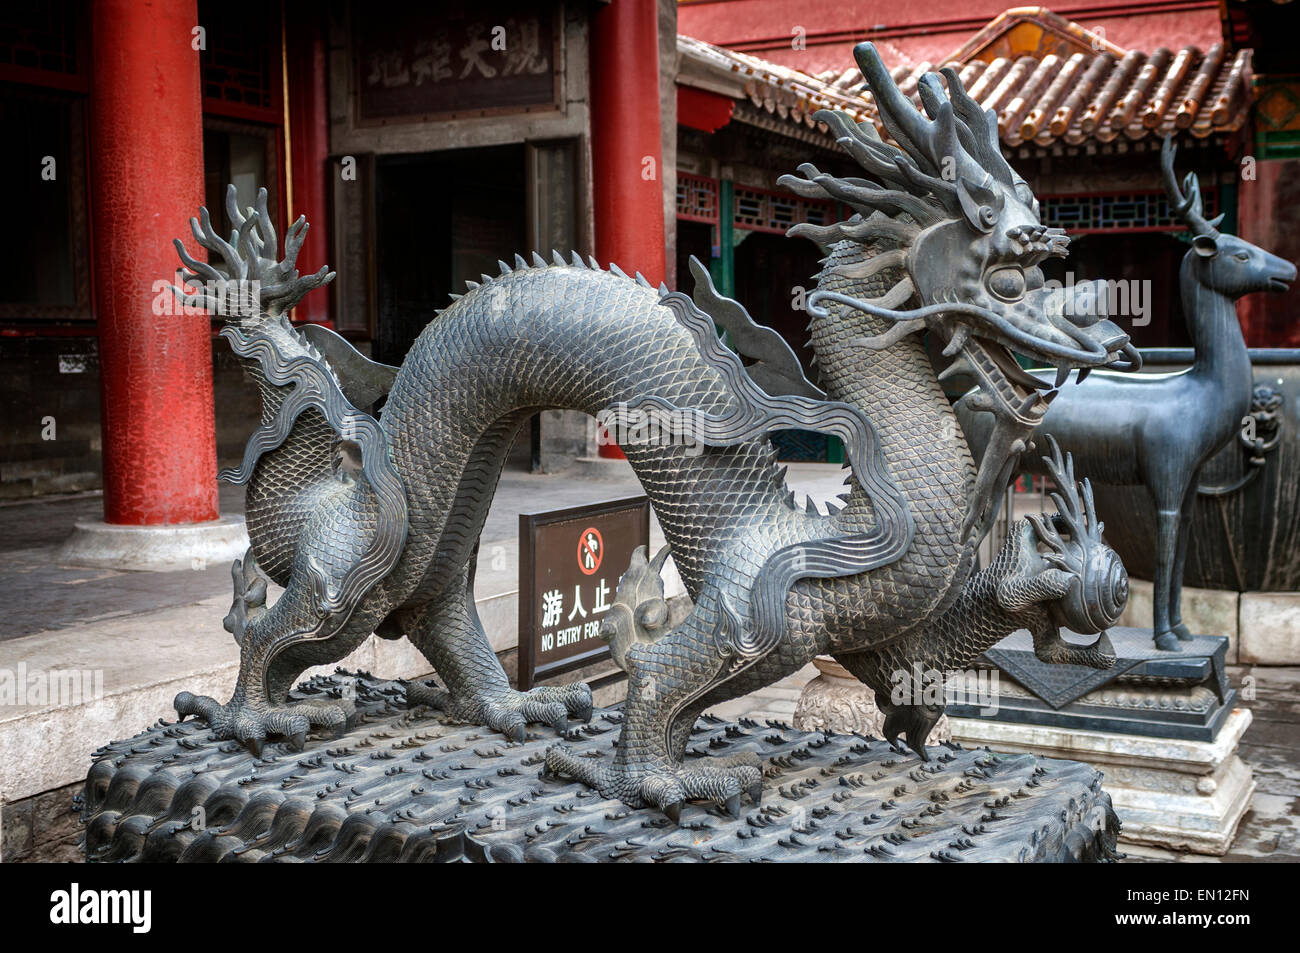 China, Beijing . Summer emperor Palace . Figures of mythical creatures at the entrances to the building. Bronze - Stock Image